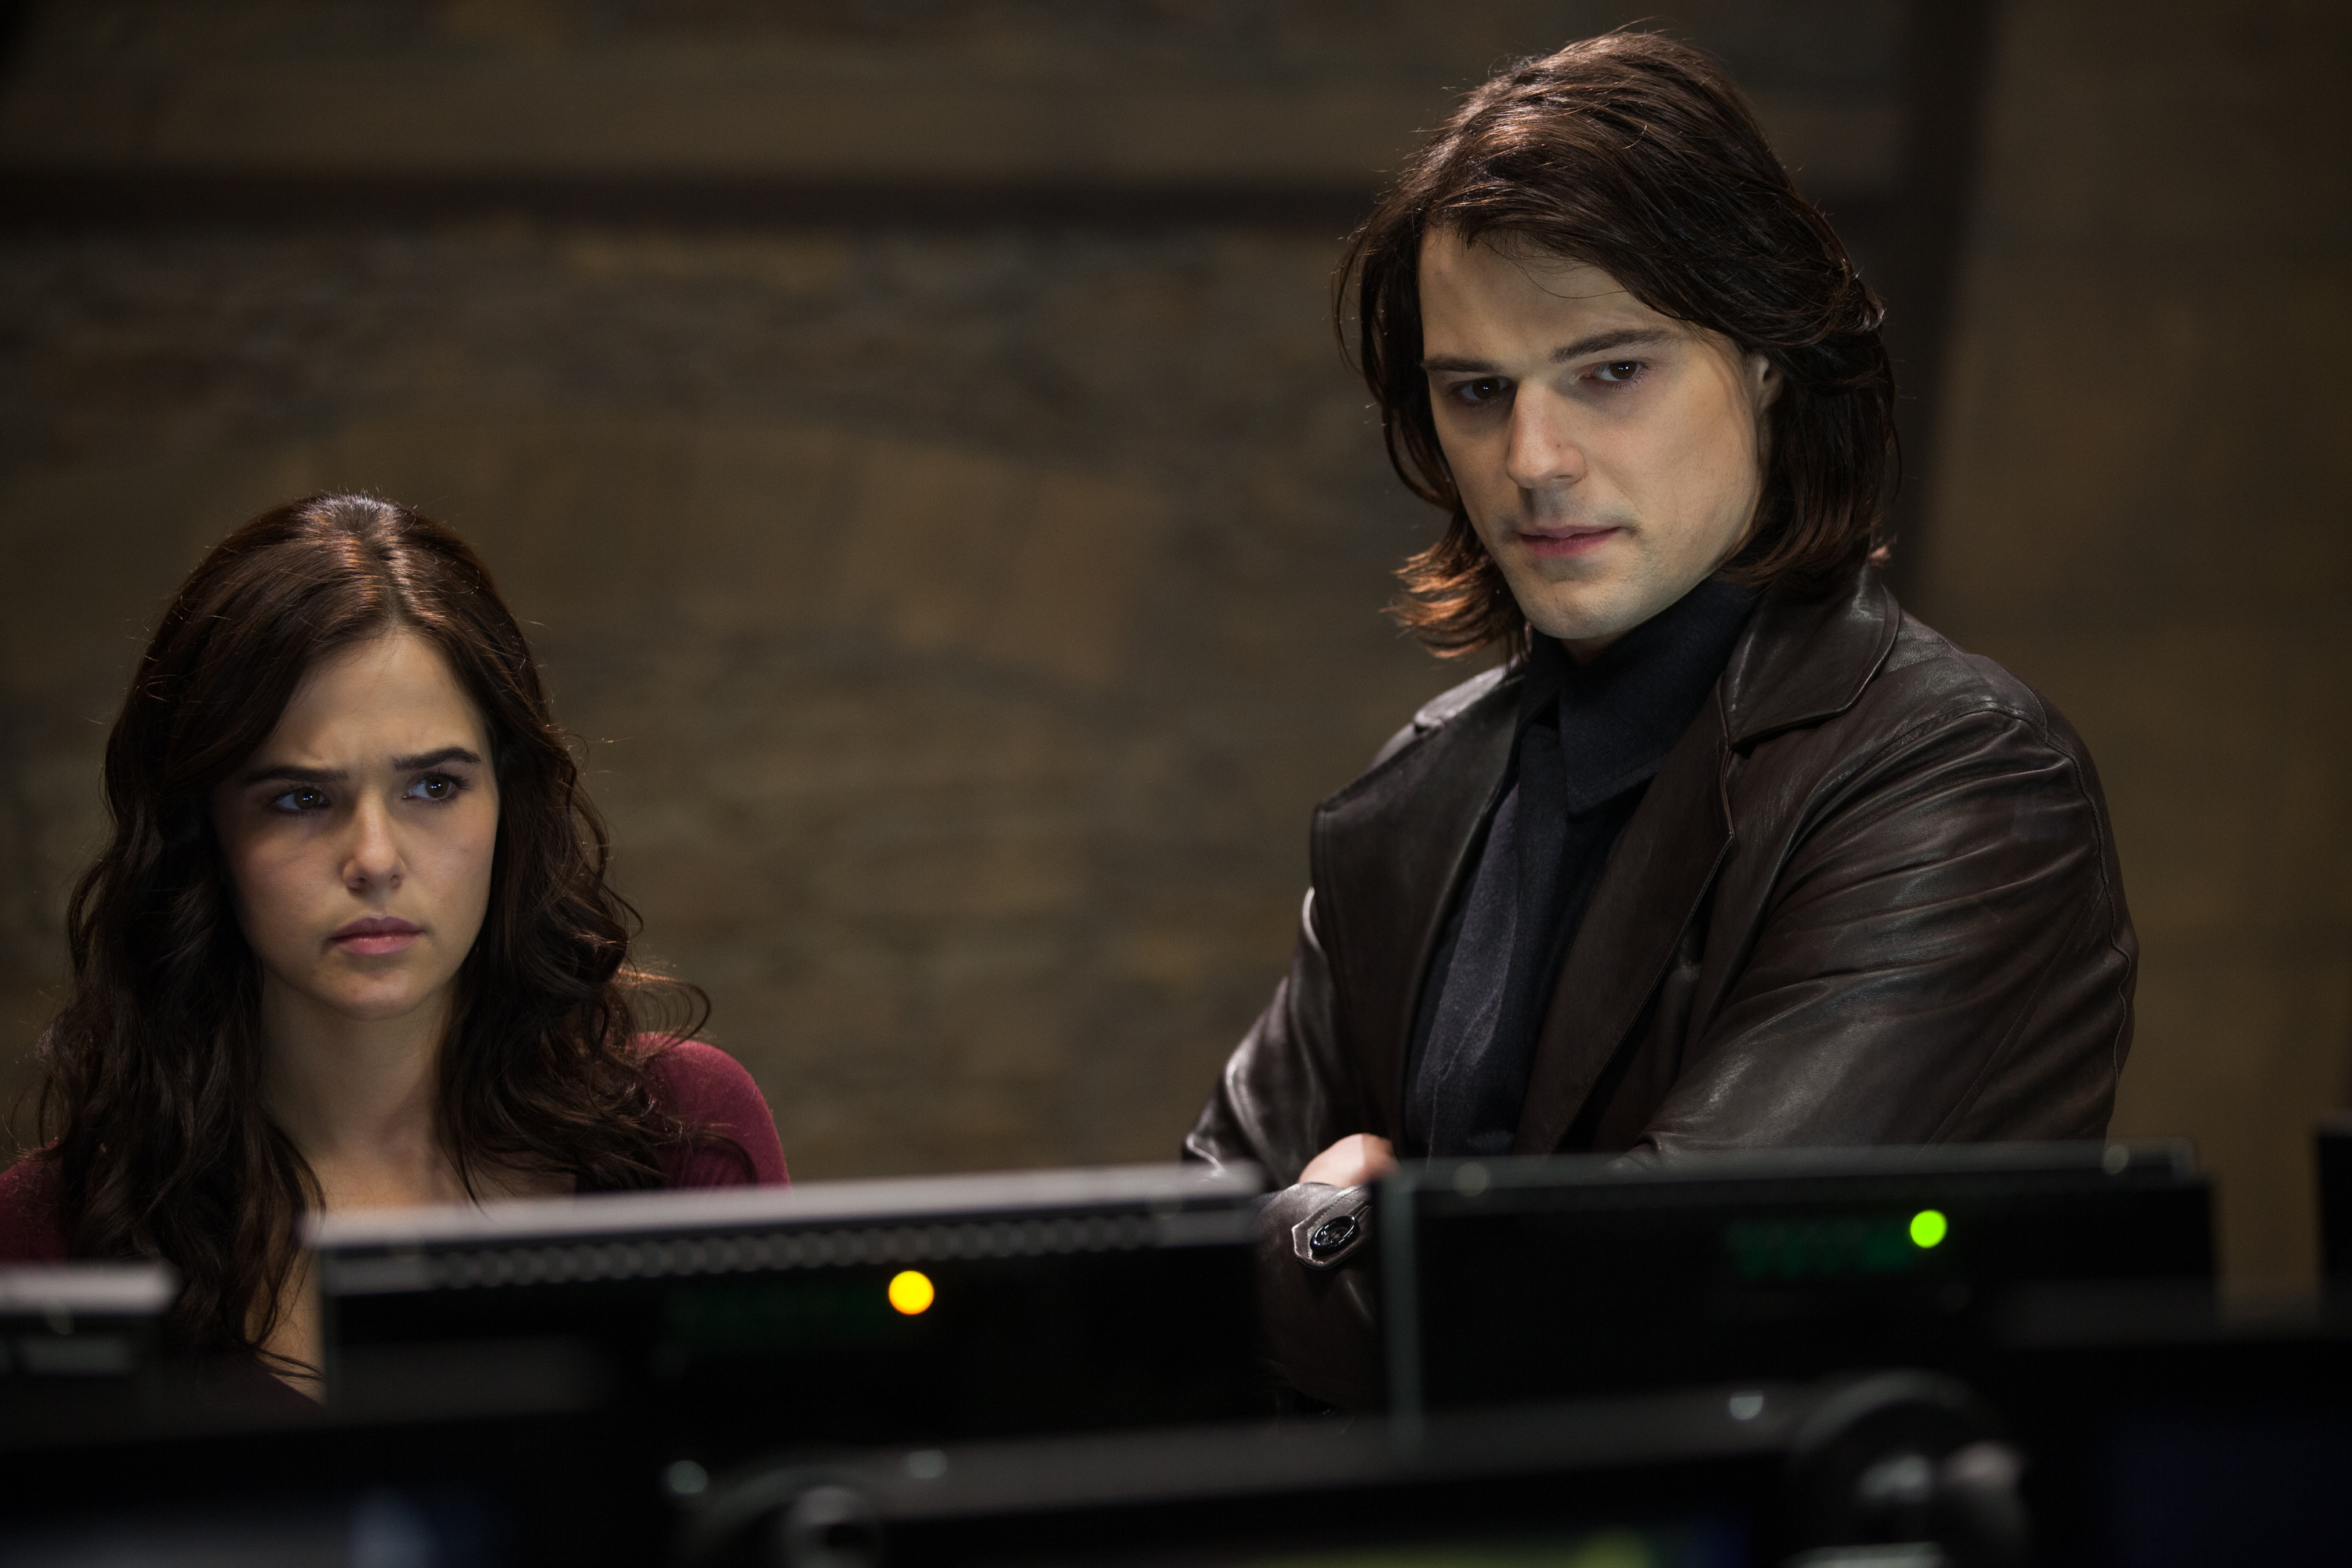 New HQ Vampire Academy stills - Dimitri Belikov Photo ...